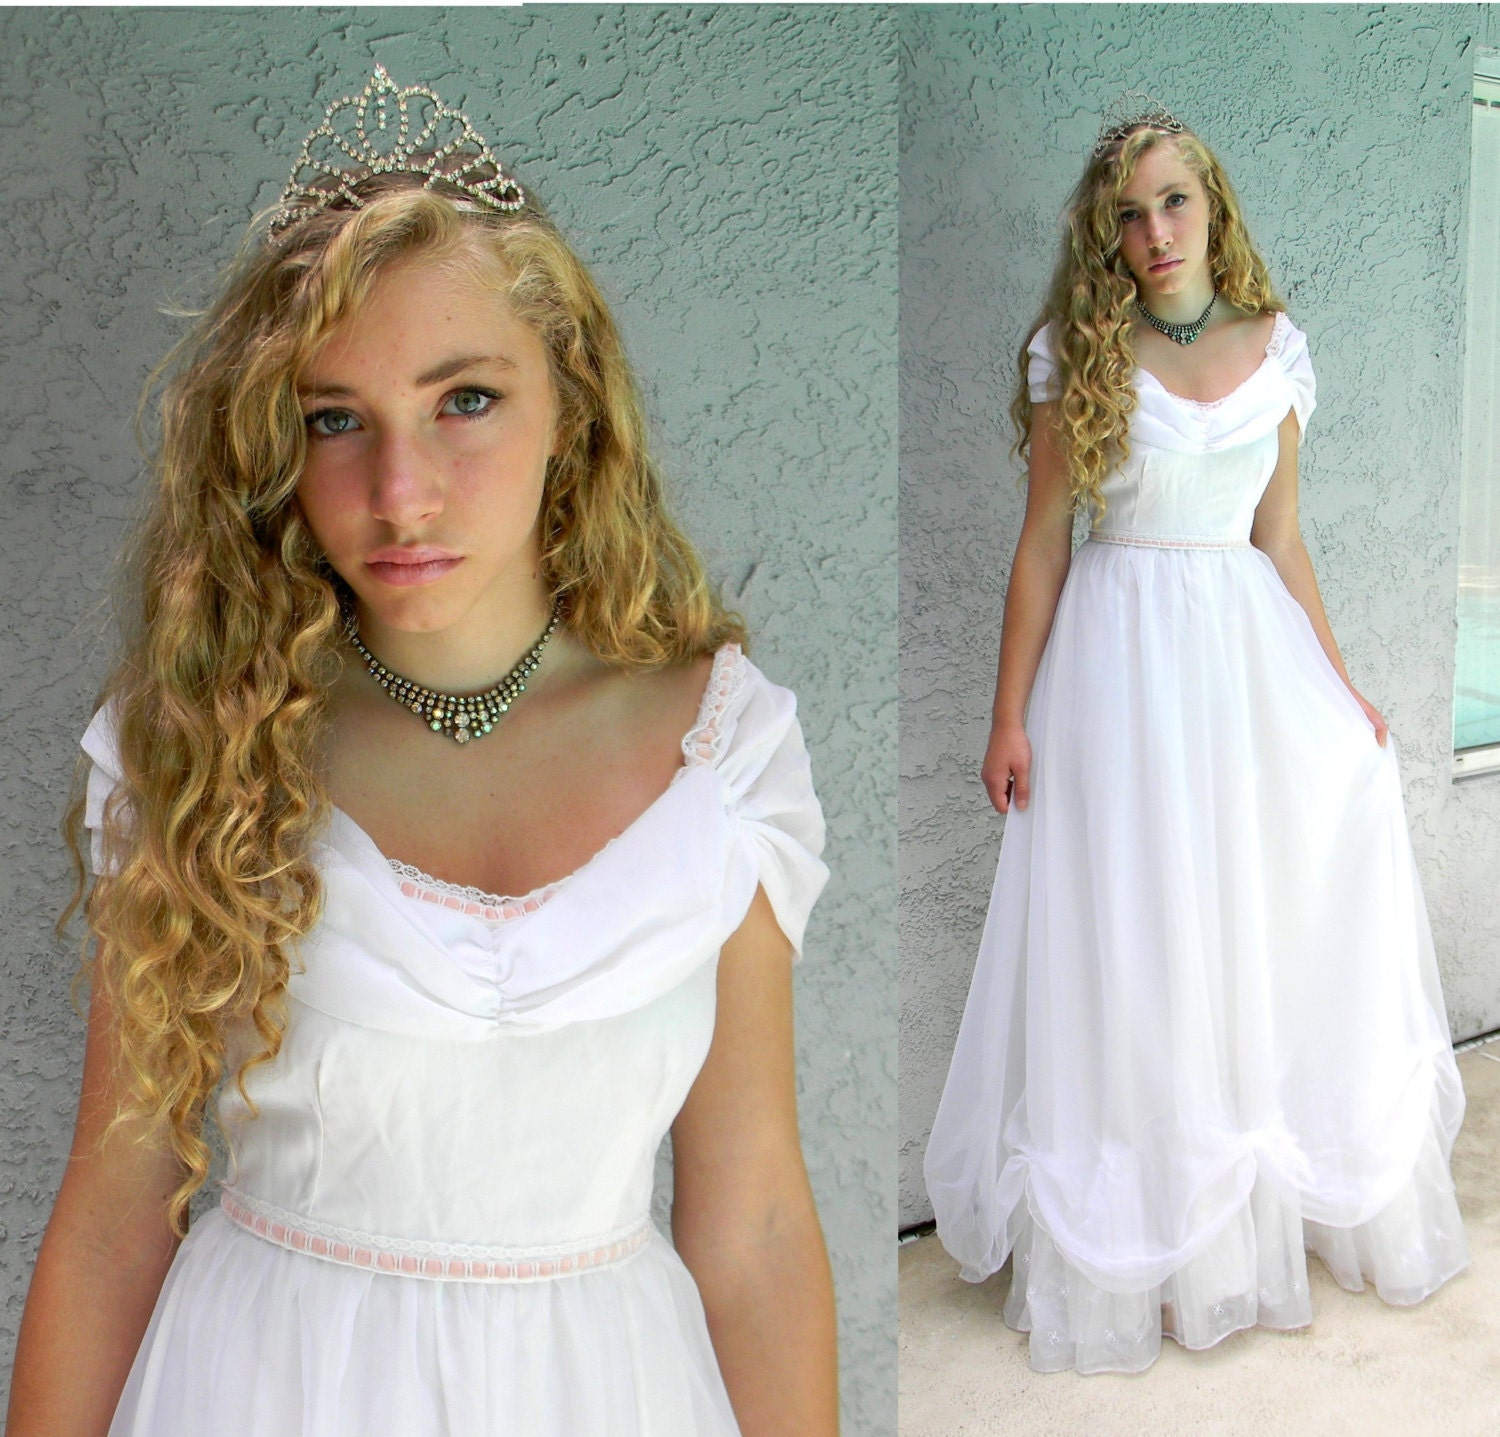 Vintage Wedding Dresses 80s: 80s Wedding Dress Or Princess Costume Vintage 80s Does 50s